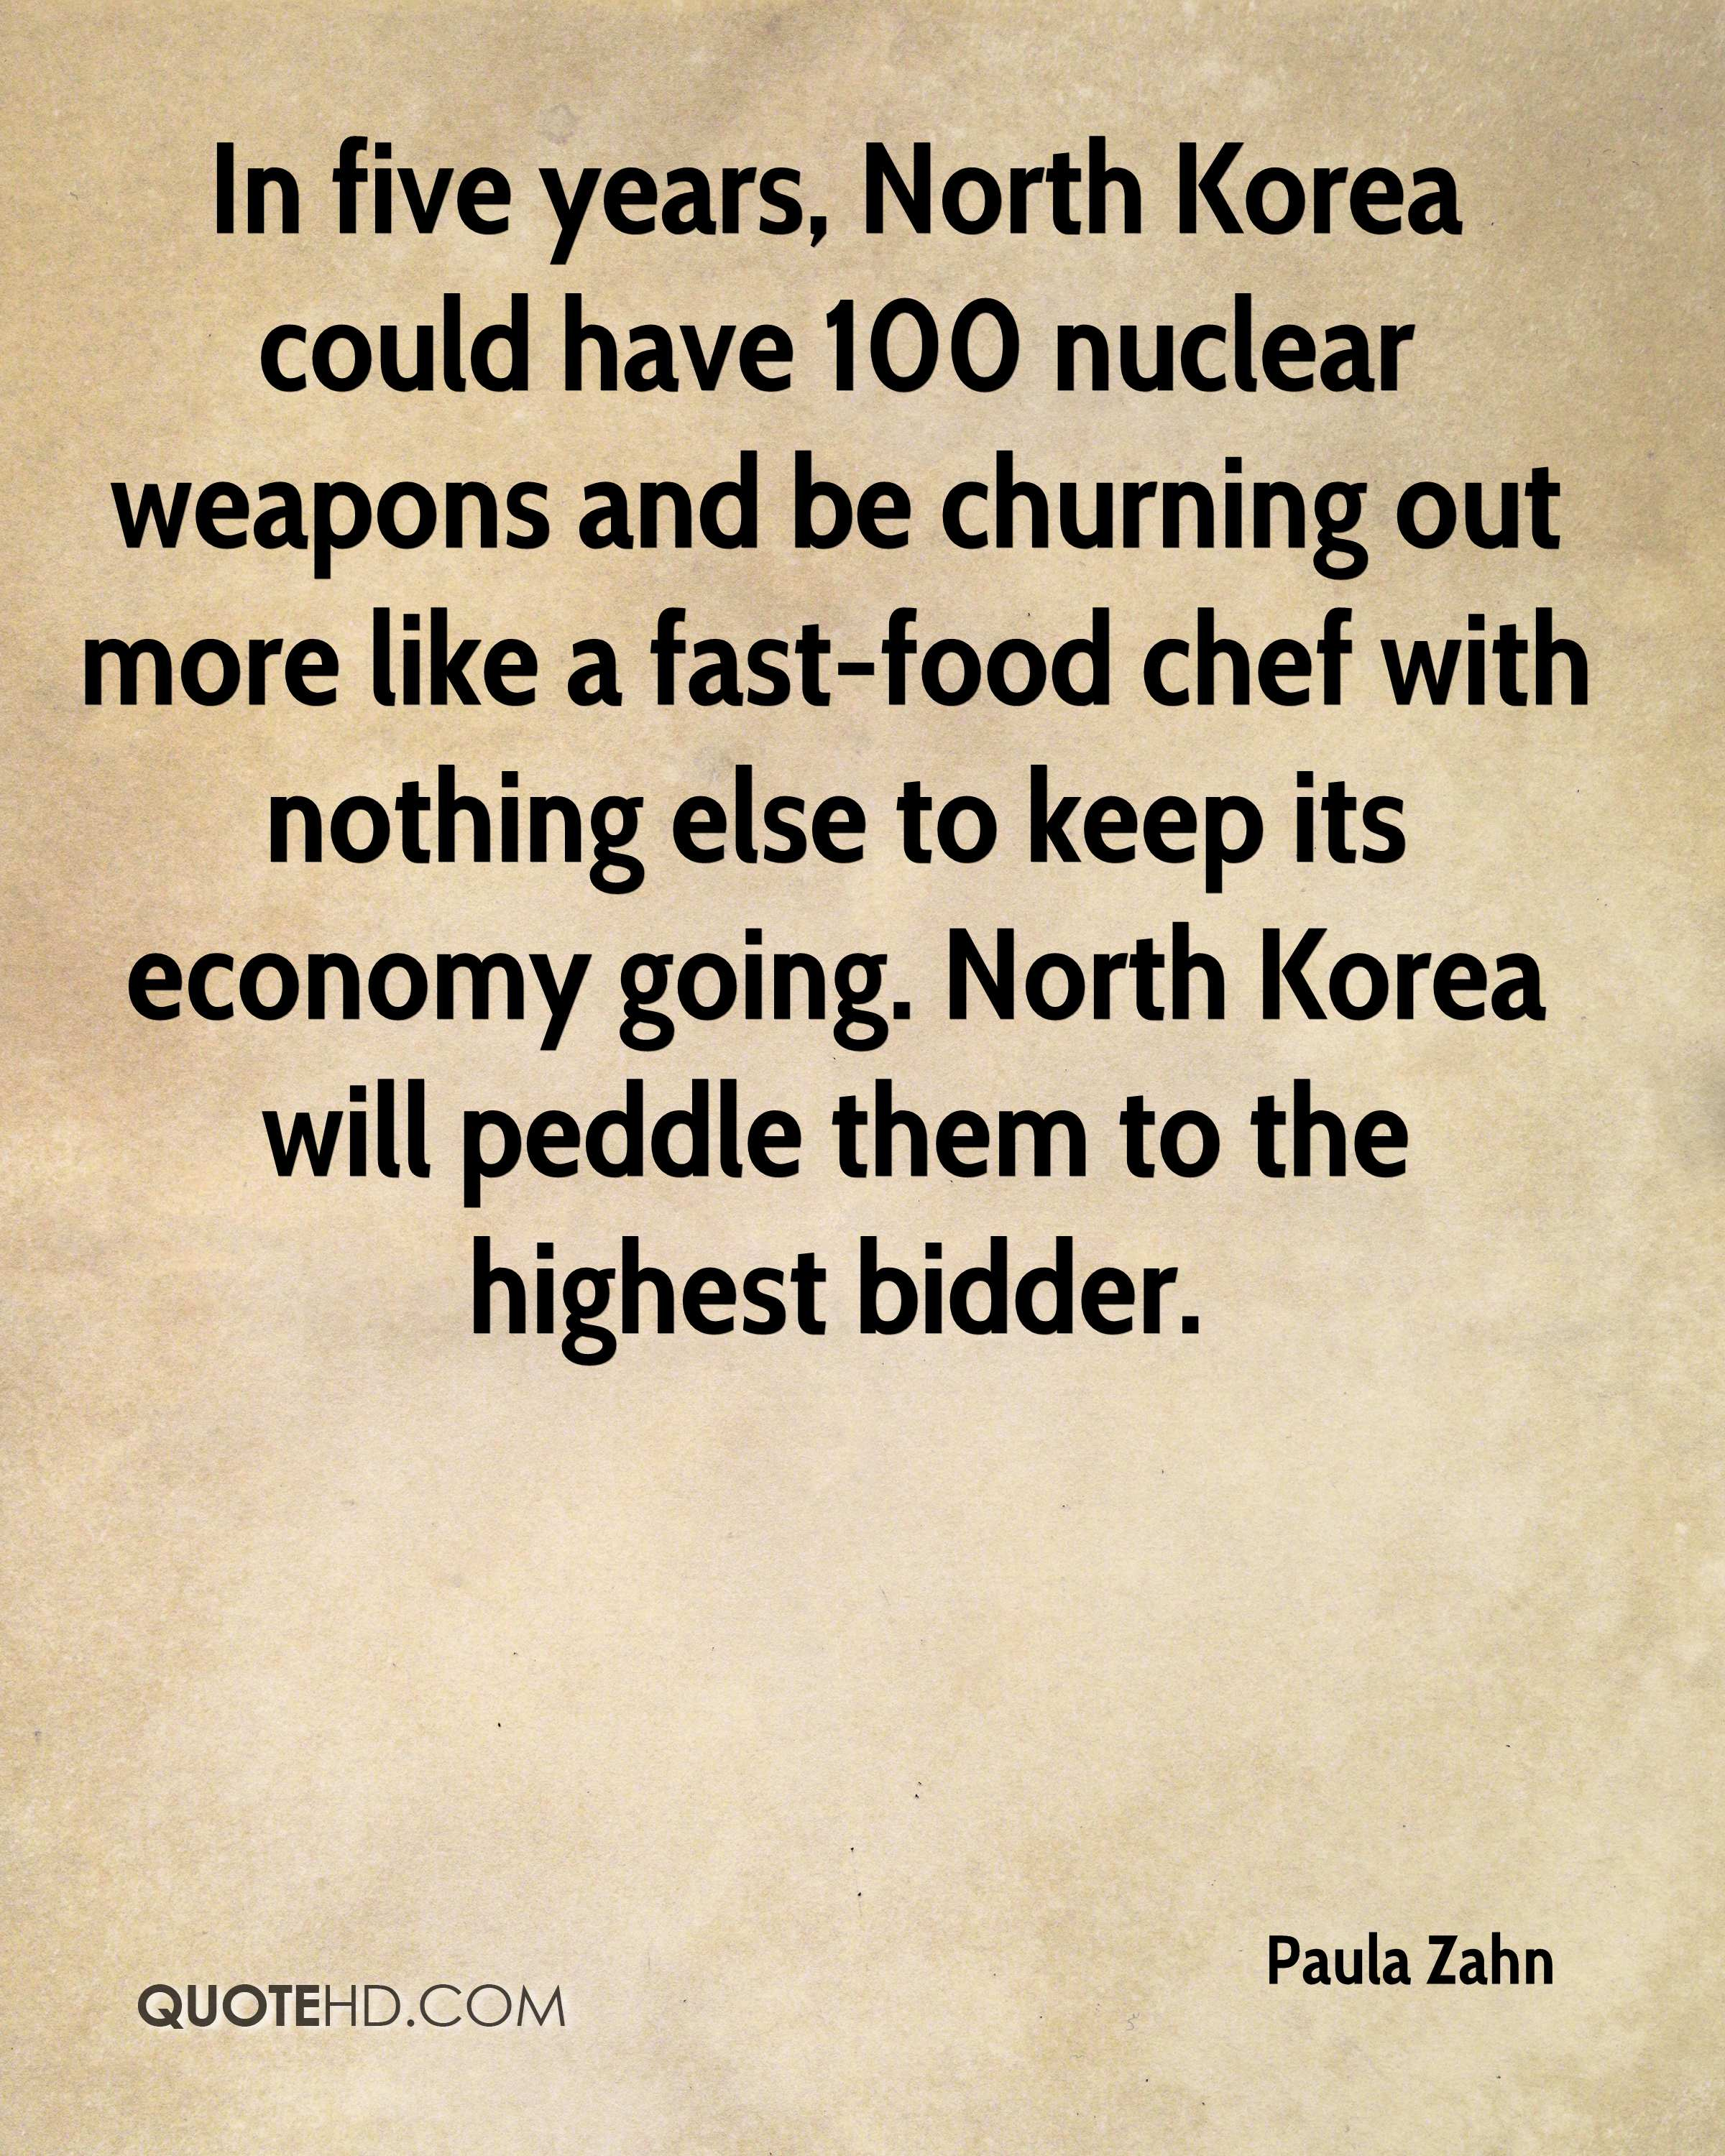 In five years, North Korea could have 100 nuclear weapons and be churning out more like a fast-food chef with nothing else to keep its economy going. North Korea will peddle them to the highest bidder.